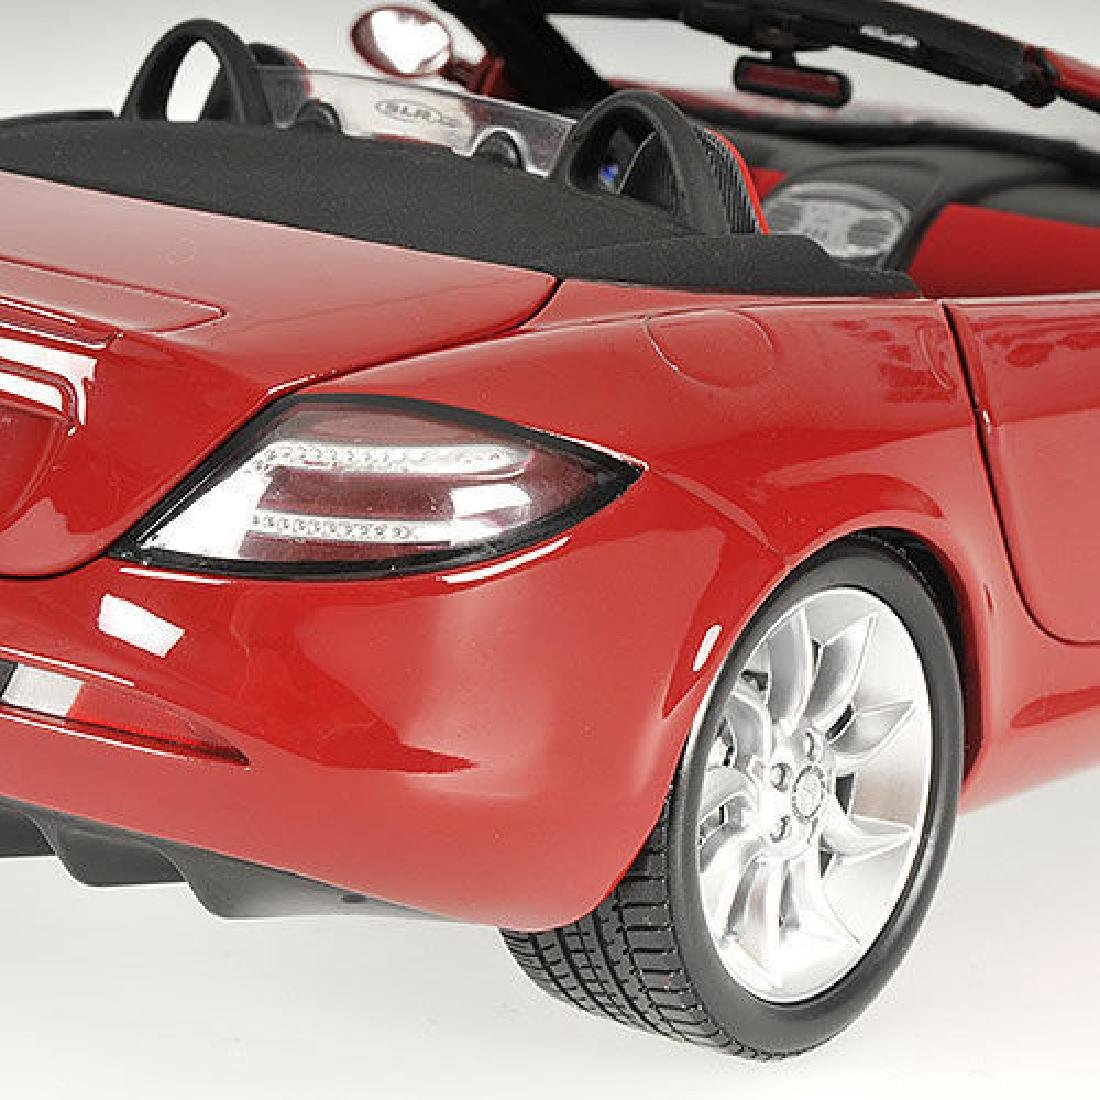 Minichamps Scale 1:18 Mercedes-Benz McLaren Roadster - 10